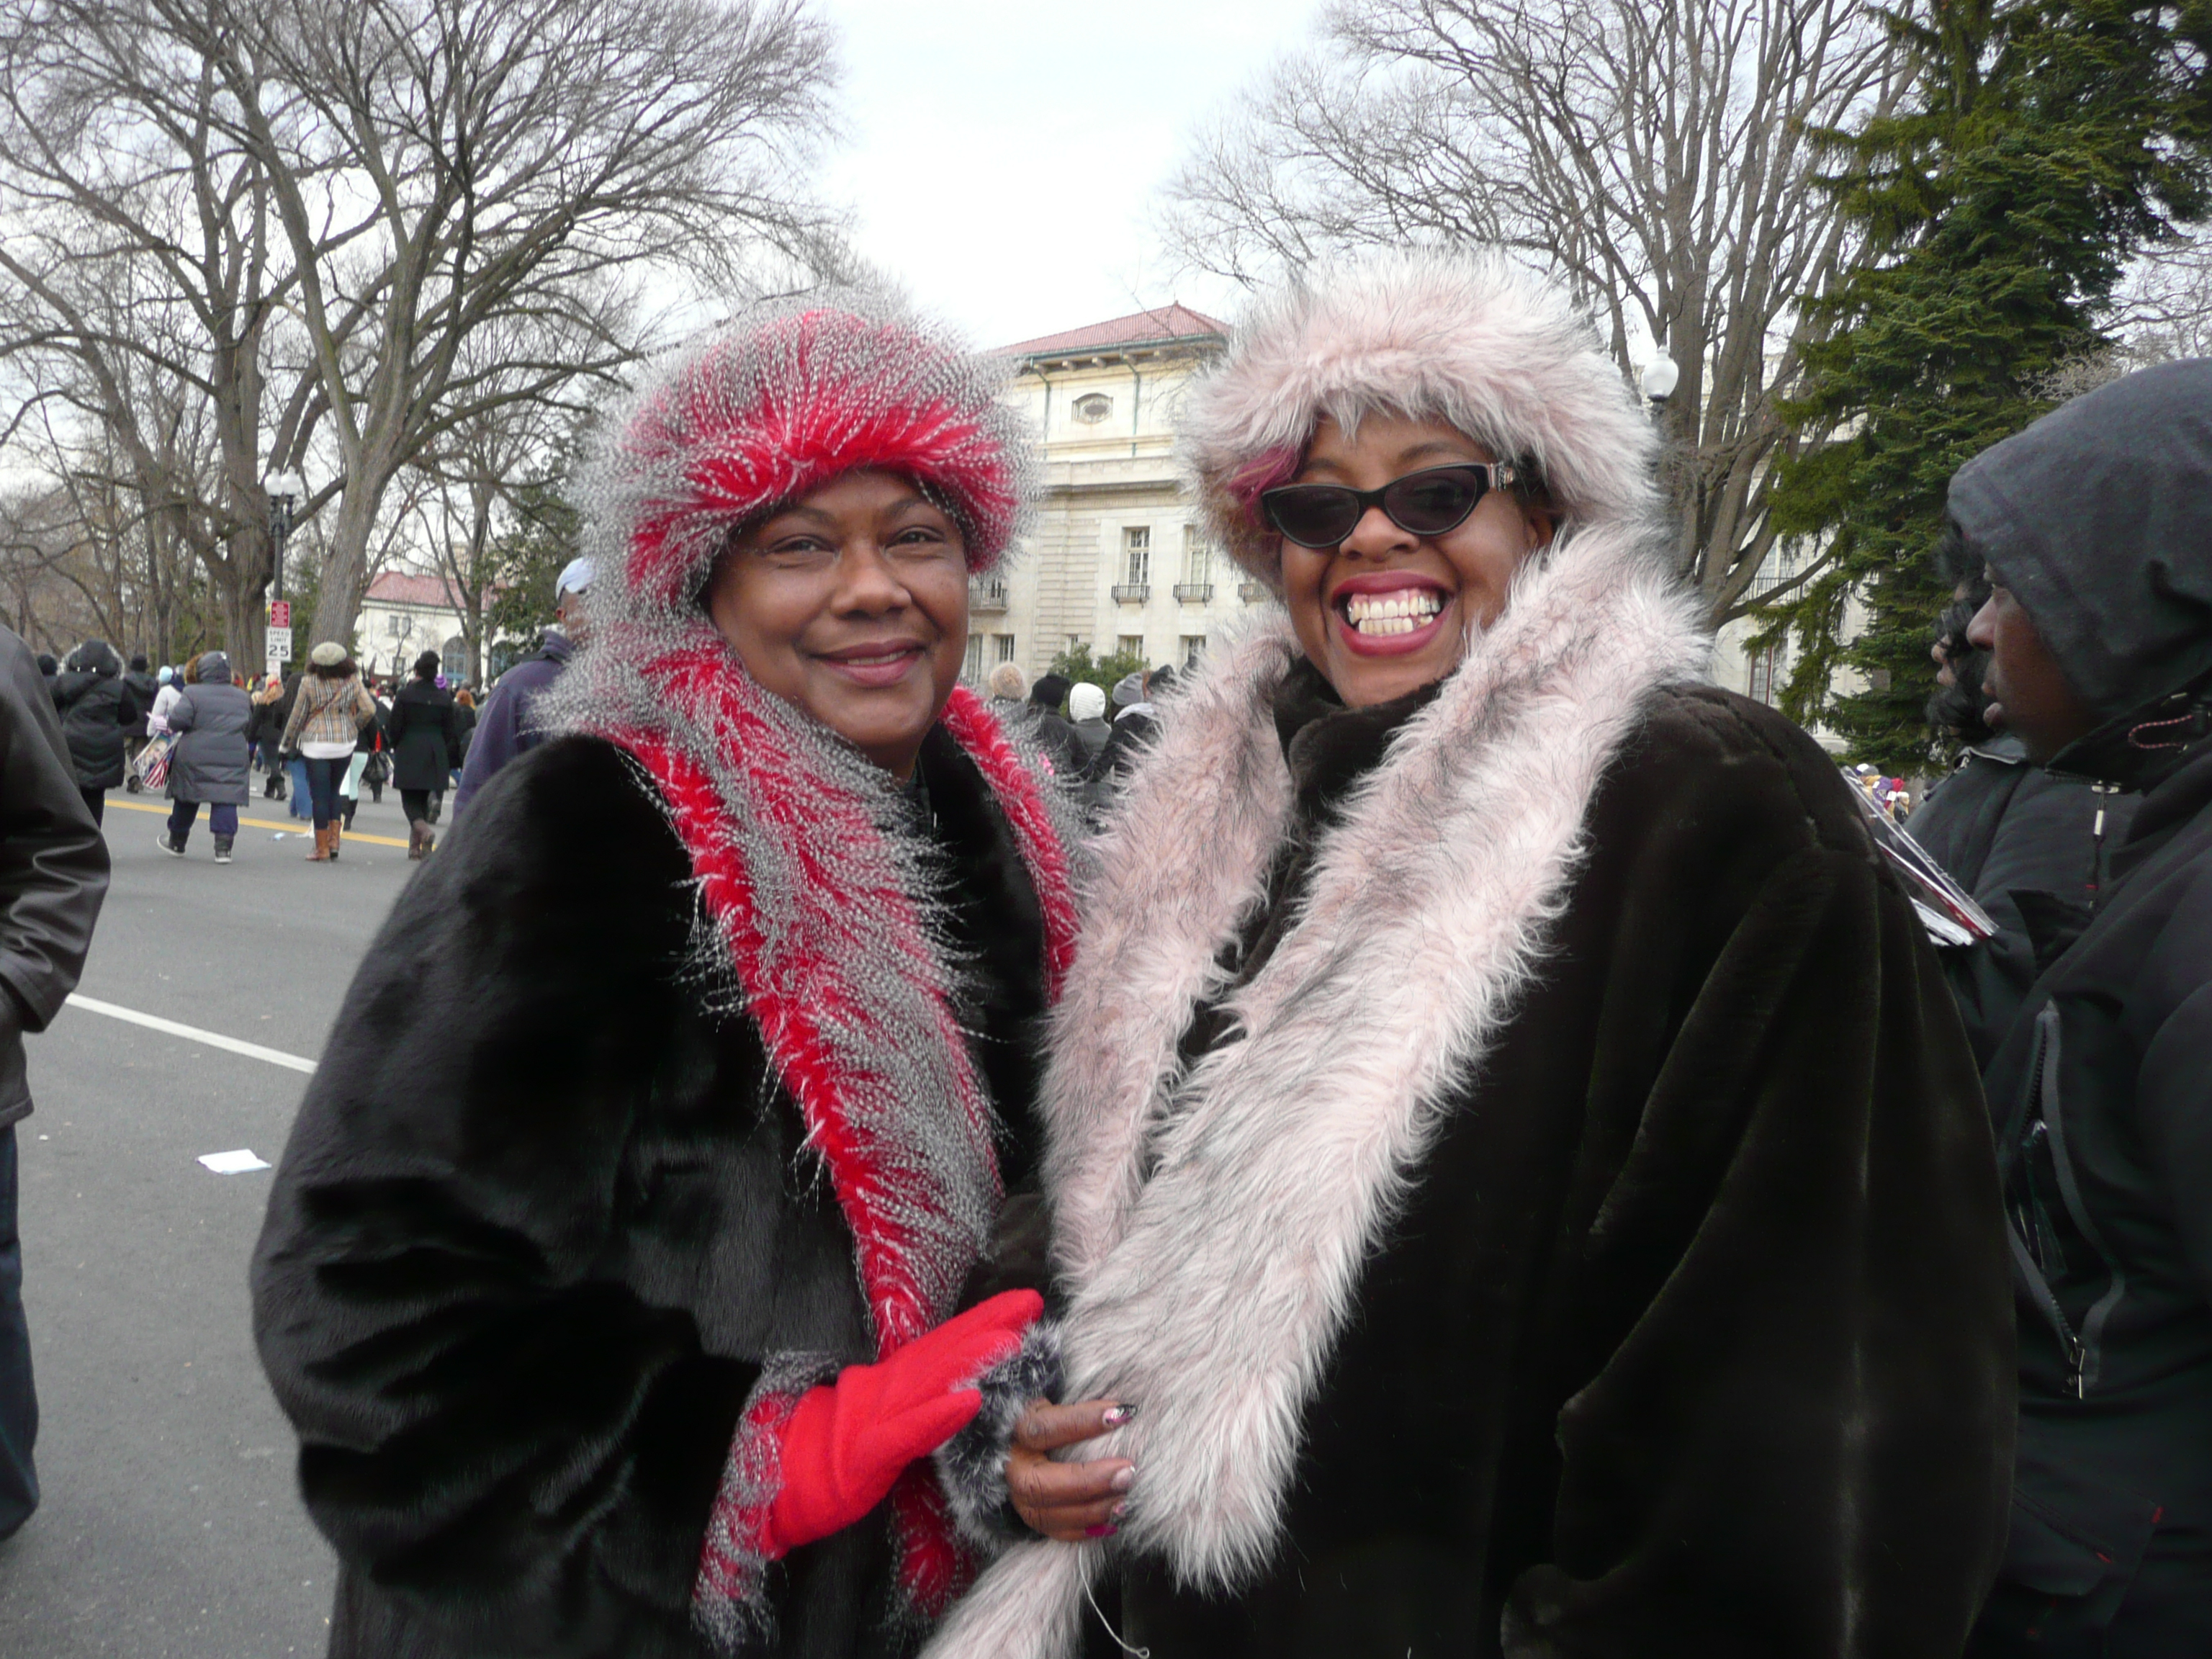 e82382cafc1 File Women with red and pink fake fur scarves and hats at Inauguration 2013 .jpg